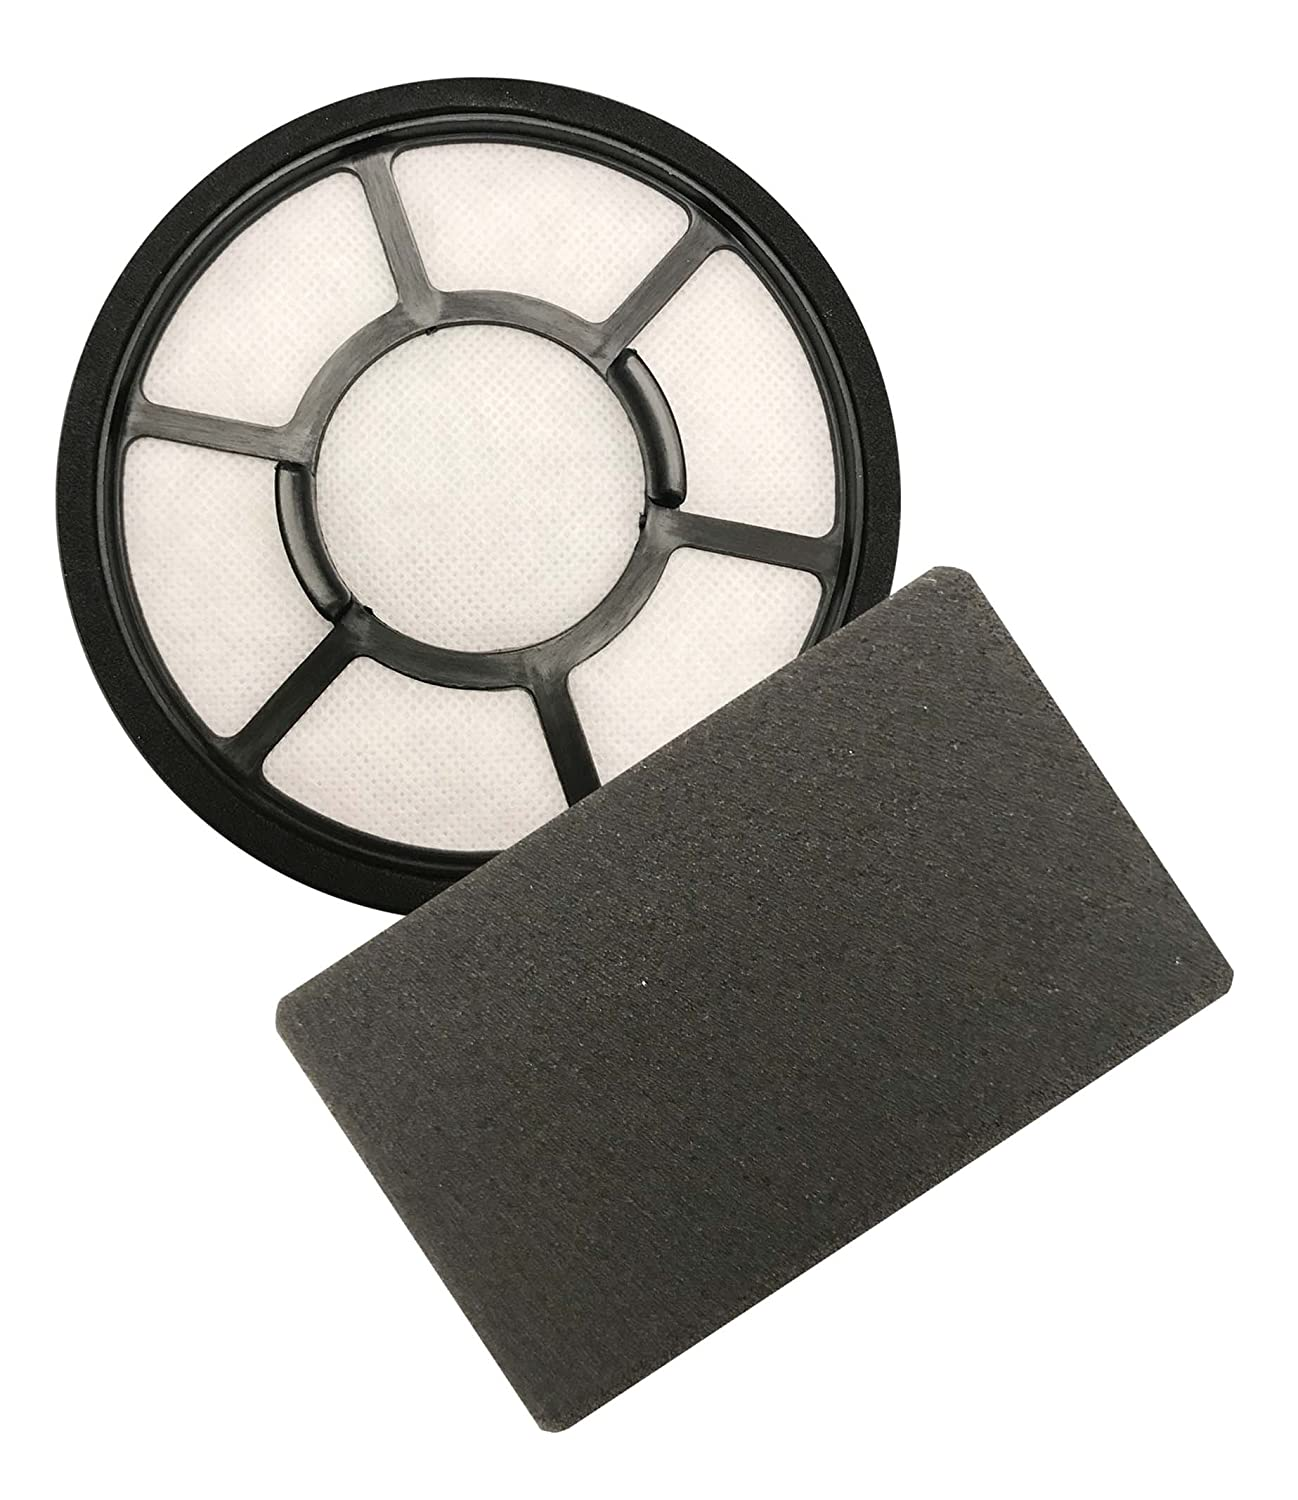 Think Crucial Replacement Kit Black & Decker Pre Filter & Carbon Filter, Compatible BDASV102 Airswivel Vacuum Cleaners